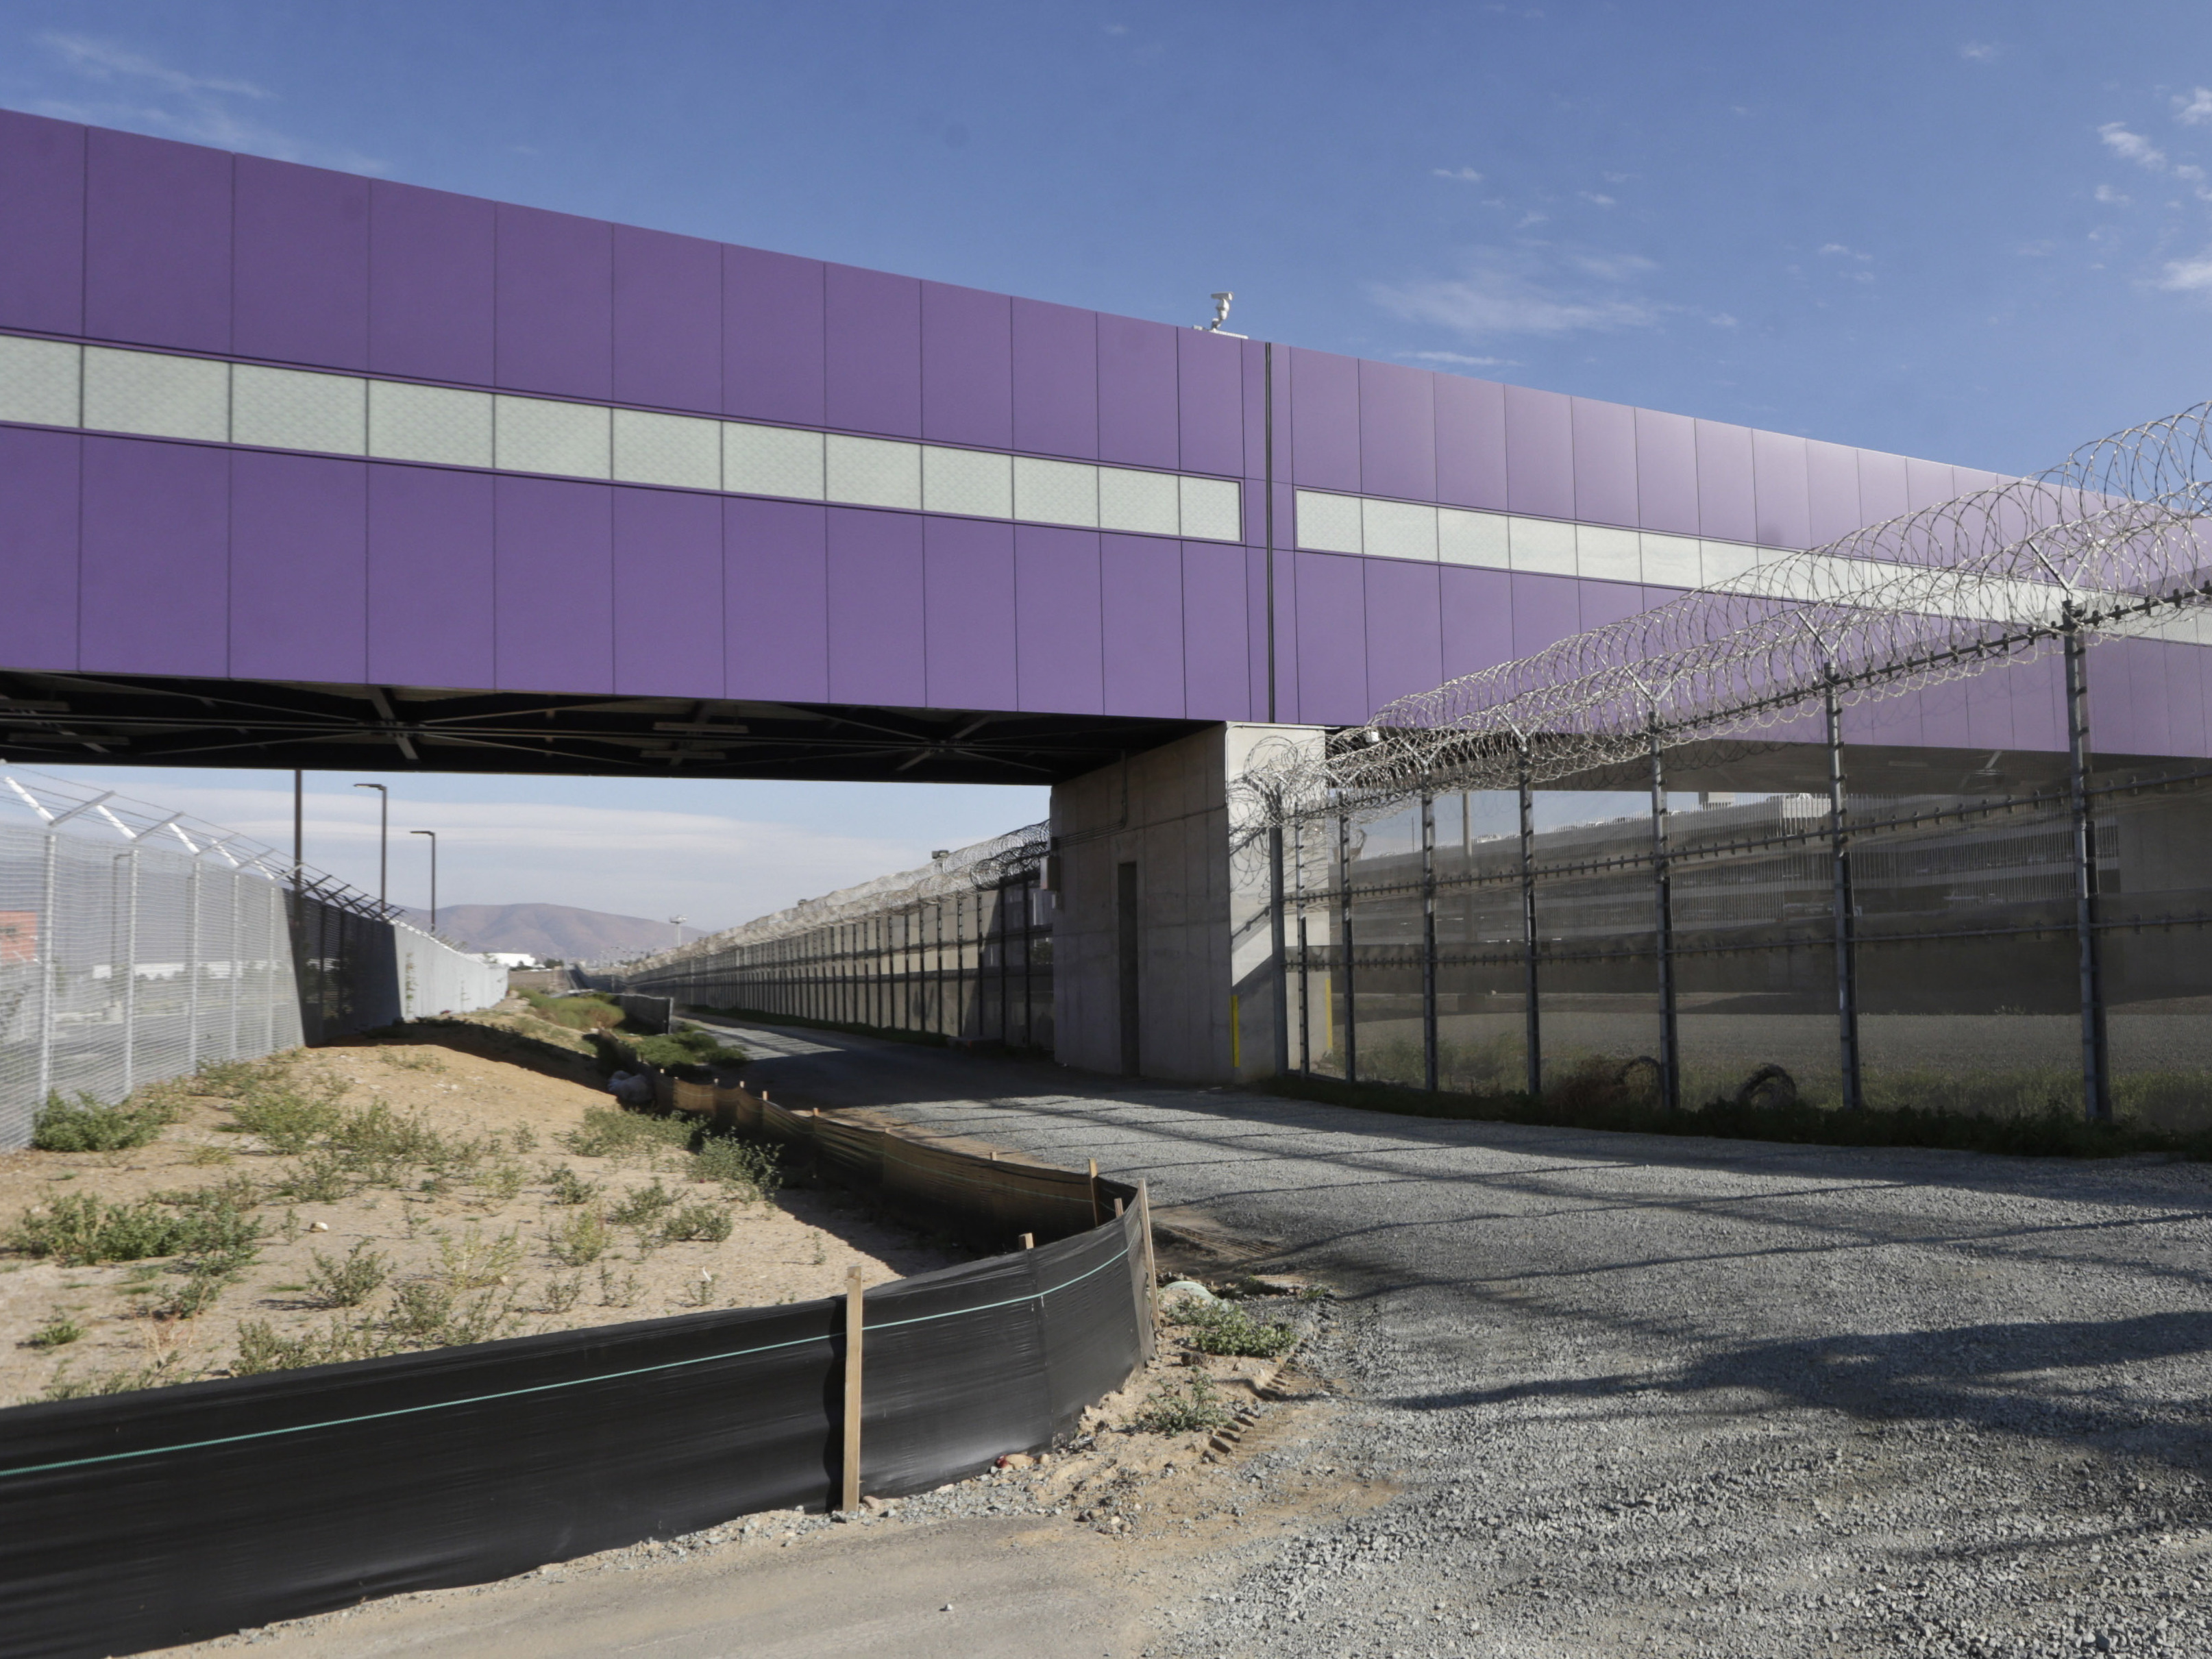 Above The Border, New Walkway Spans The Gap Between U.S. And Mexico